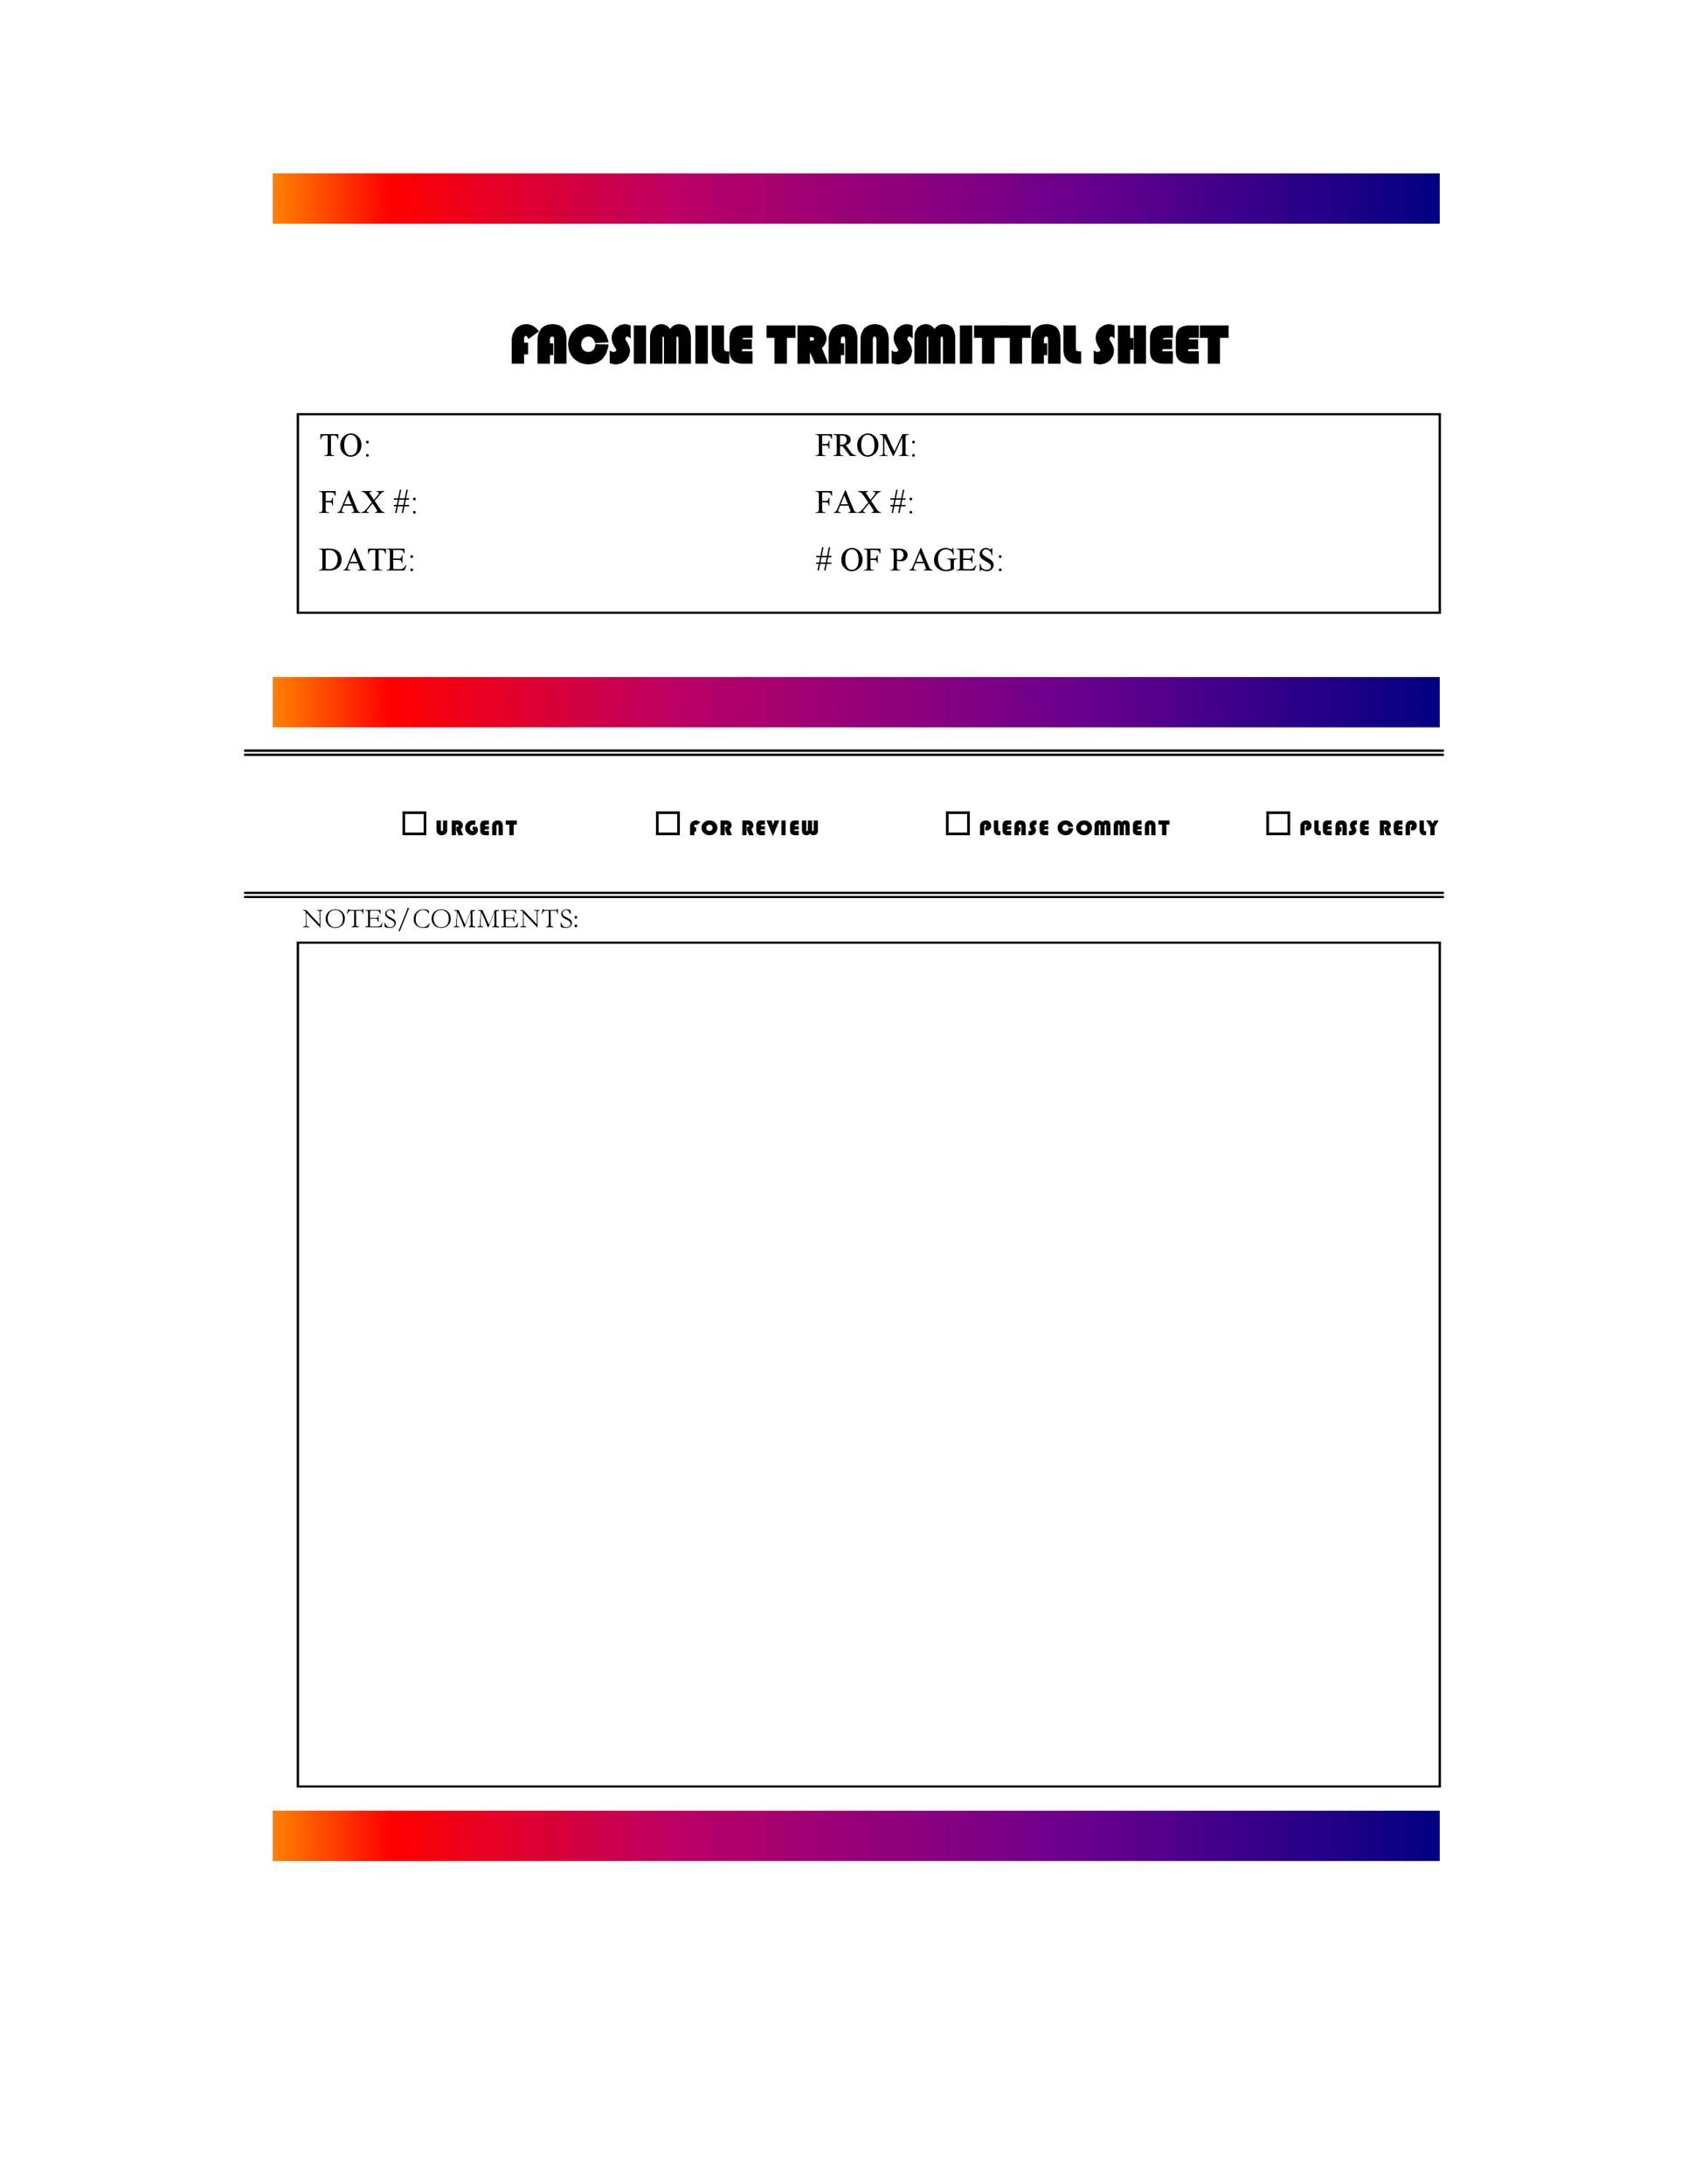 Free Fax Cover sheet Template 39